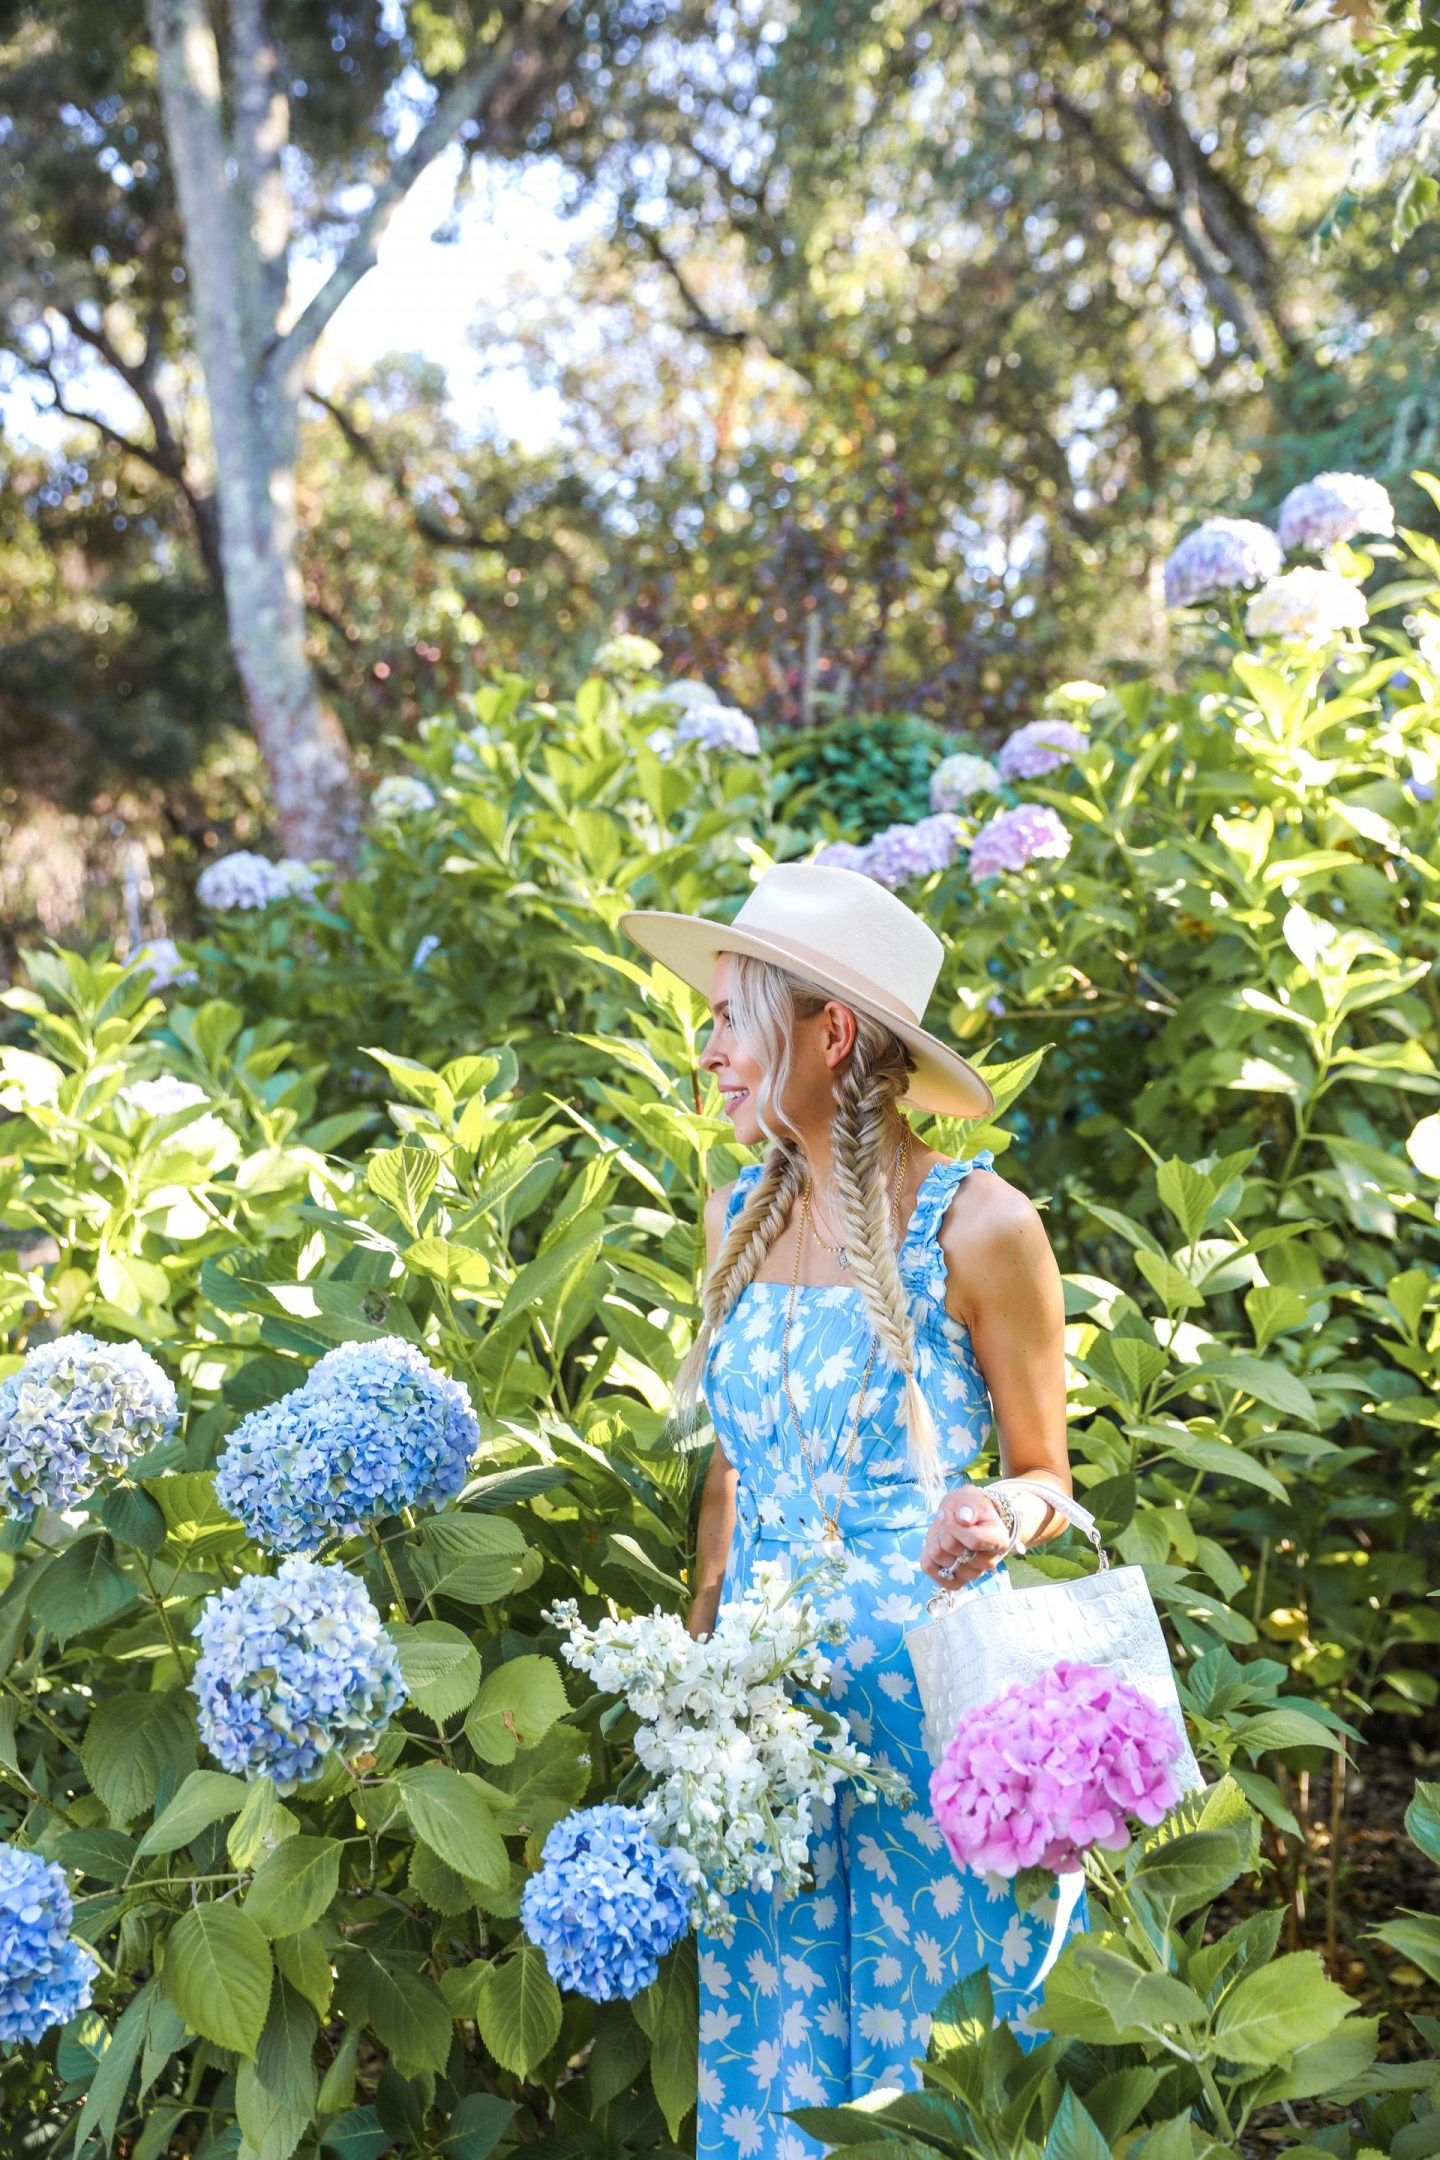 Faithful the brand jumpsuit shopbop in a hydrangea garden in Filoli, featured by San Francisco style blogger Lombard and Fifth.